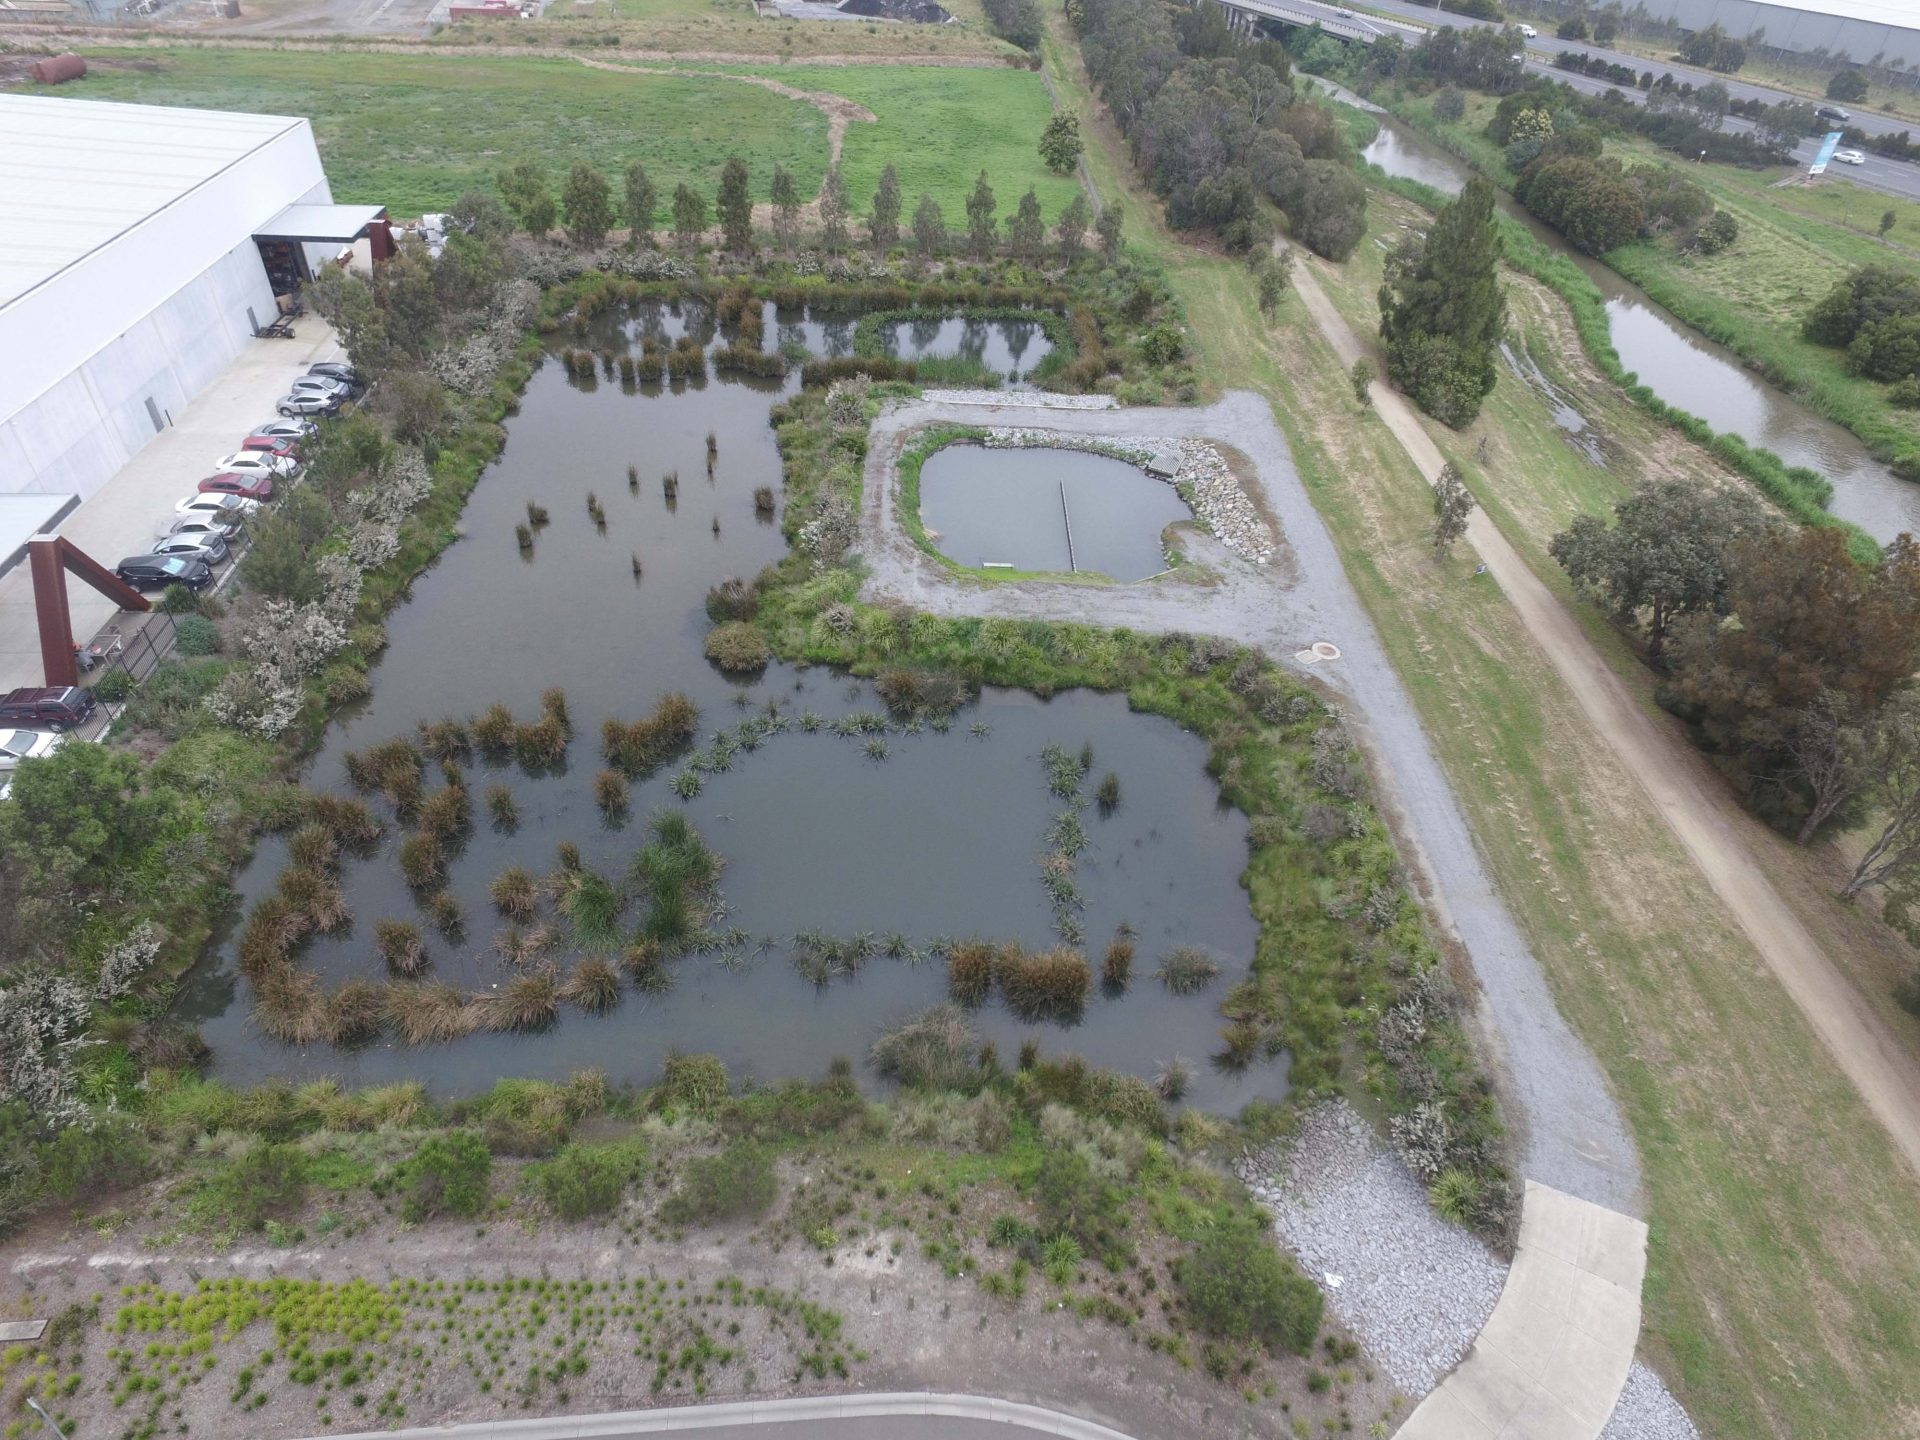 A constructed wetland used to filter and remove pollutants from stormwater before it enters local waterways